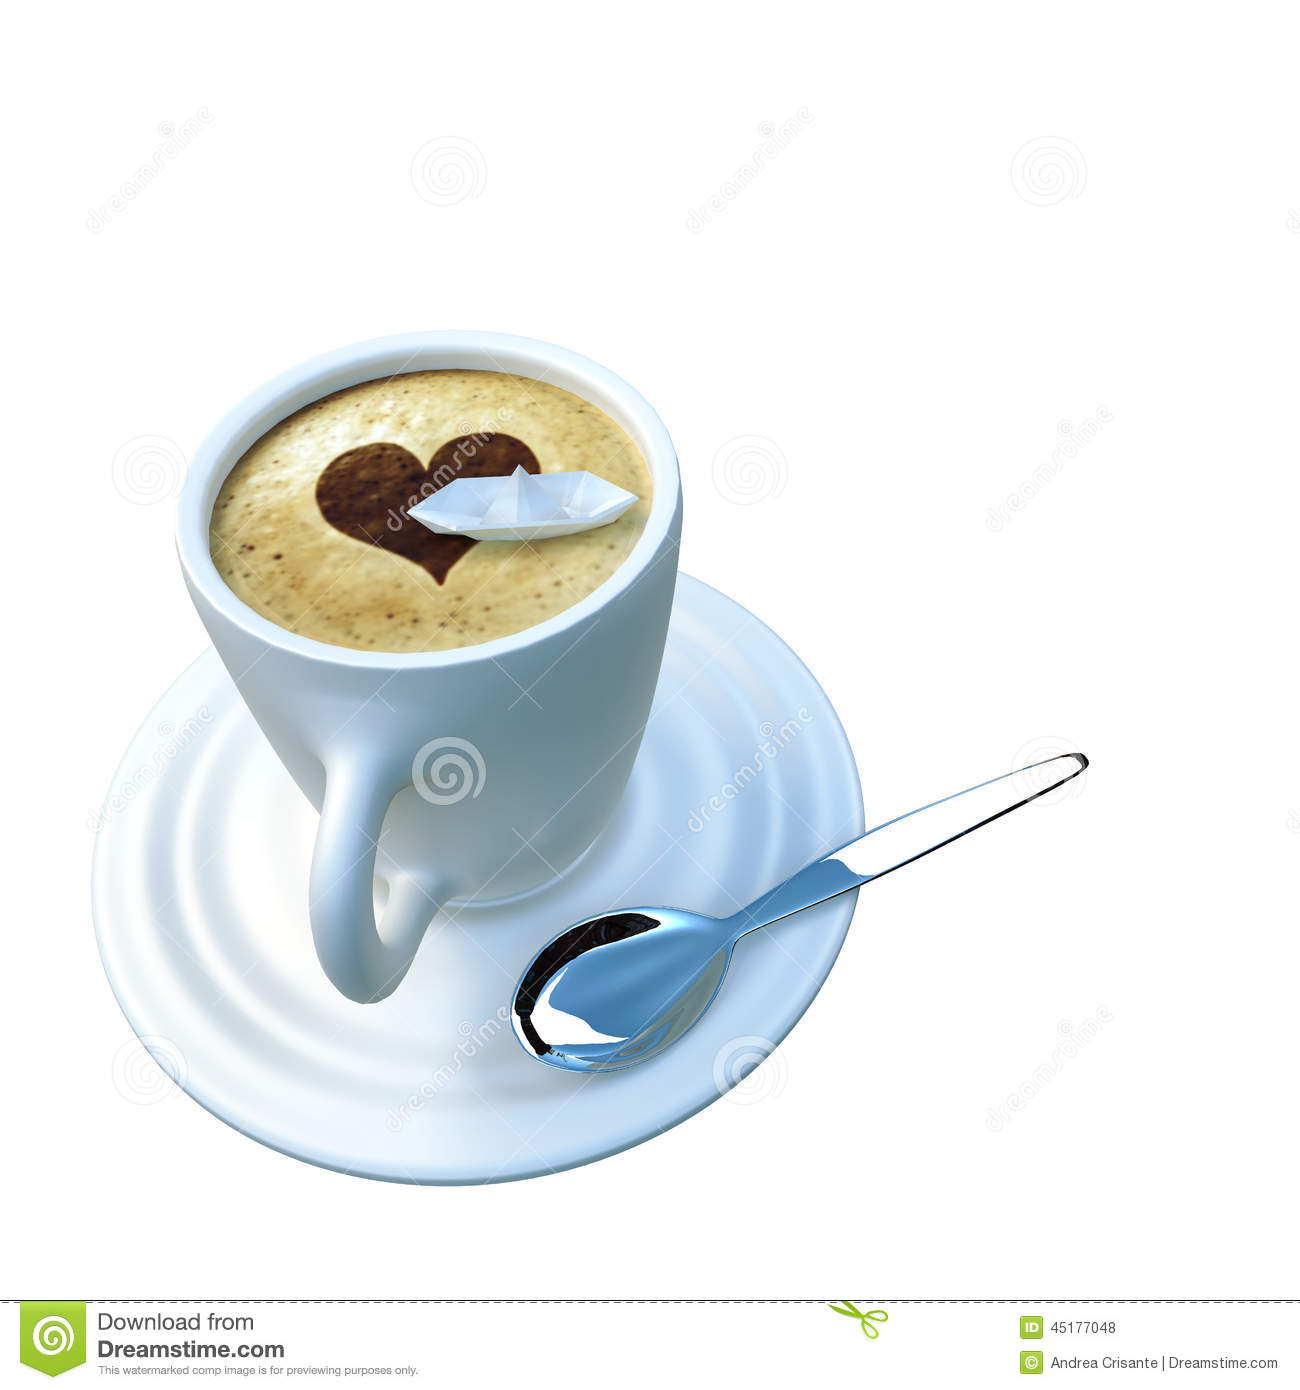 Origami Boat Floating In A Coffee Cup Stock Illustration ... - photo#46